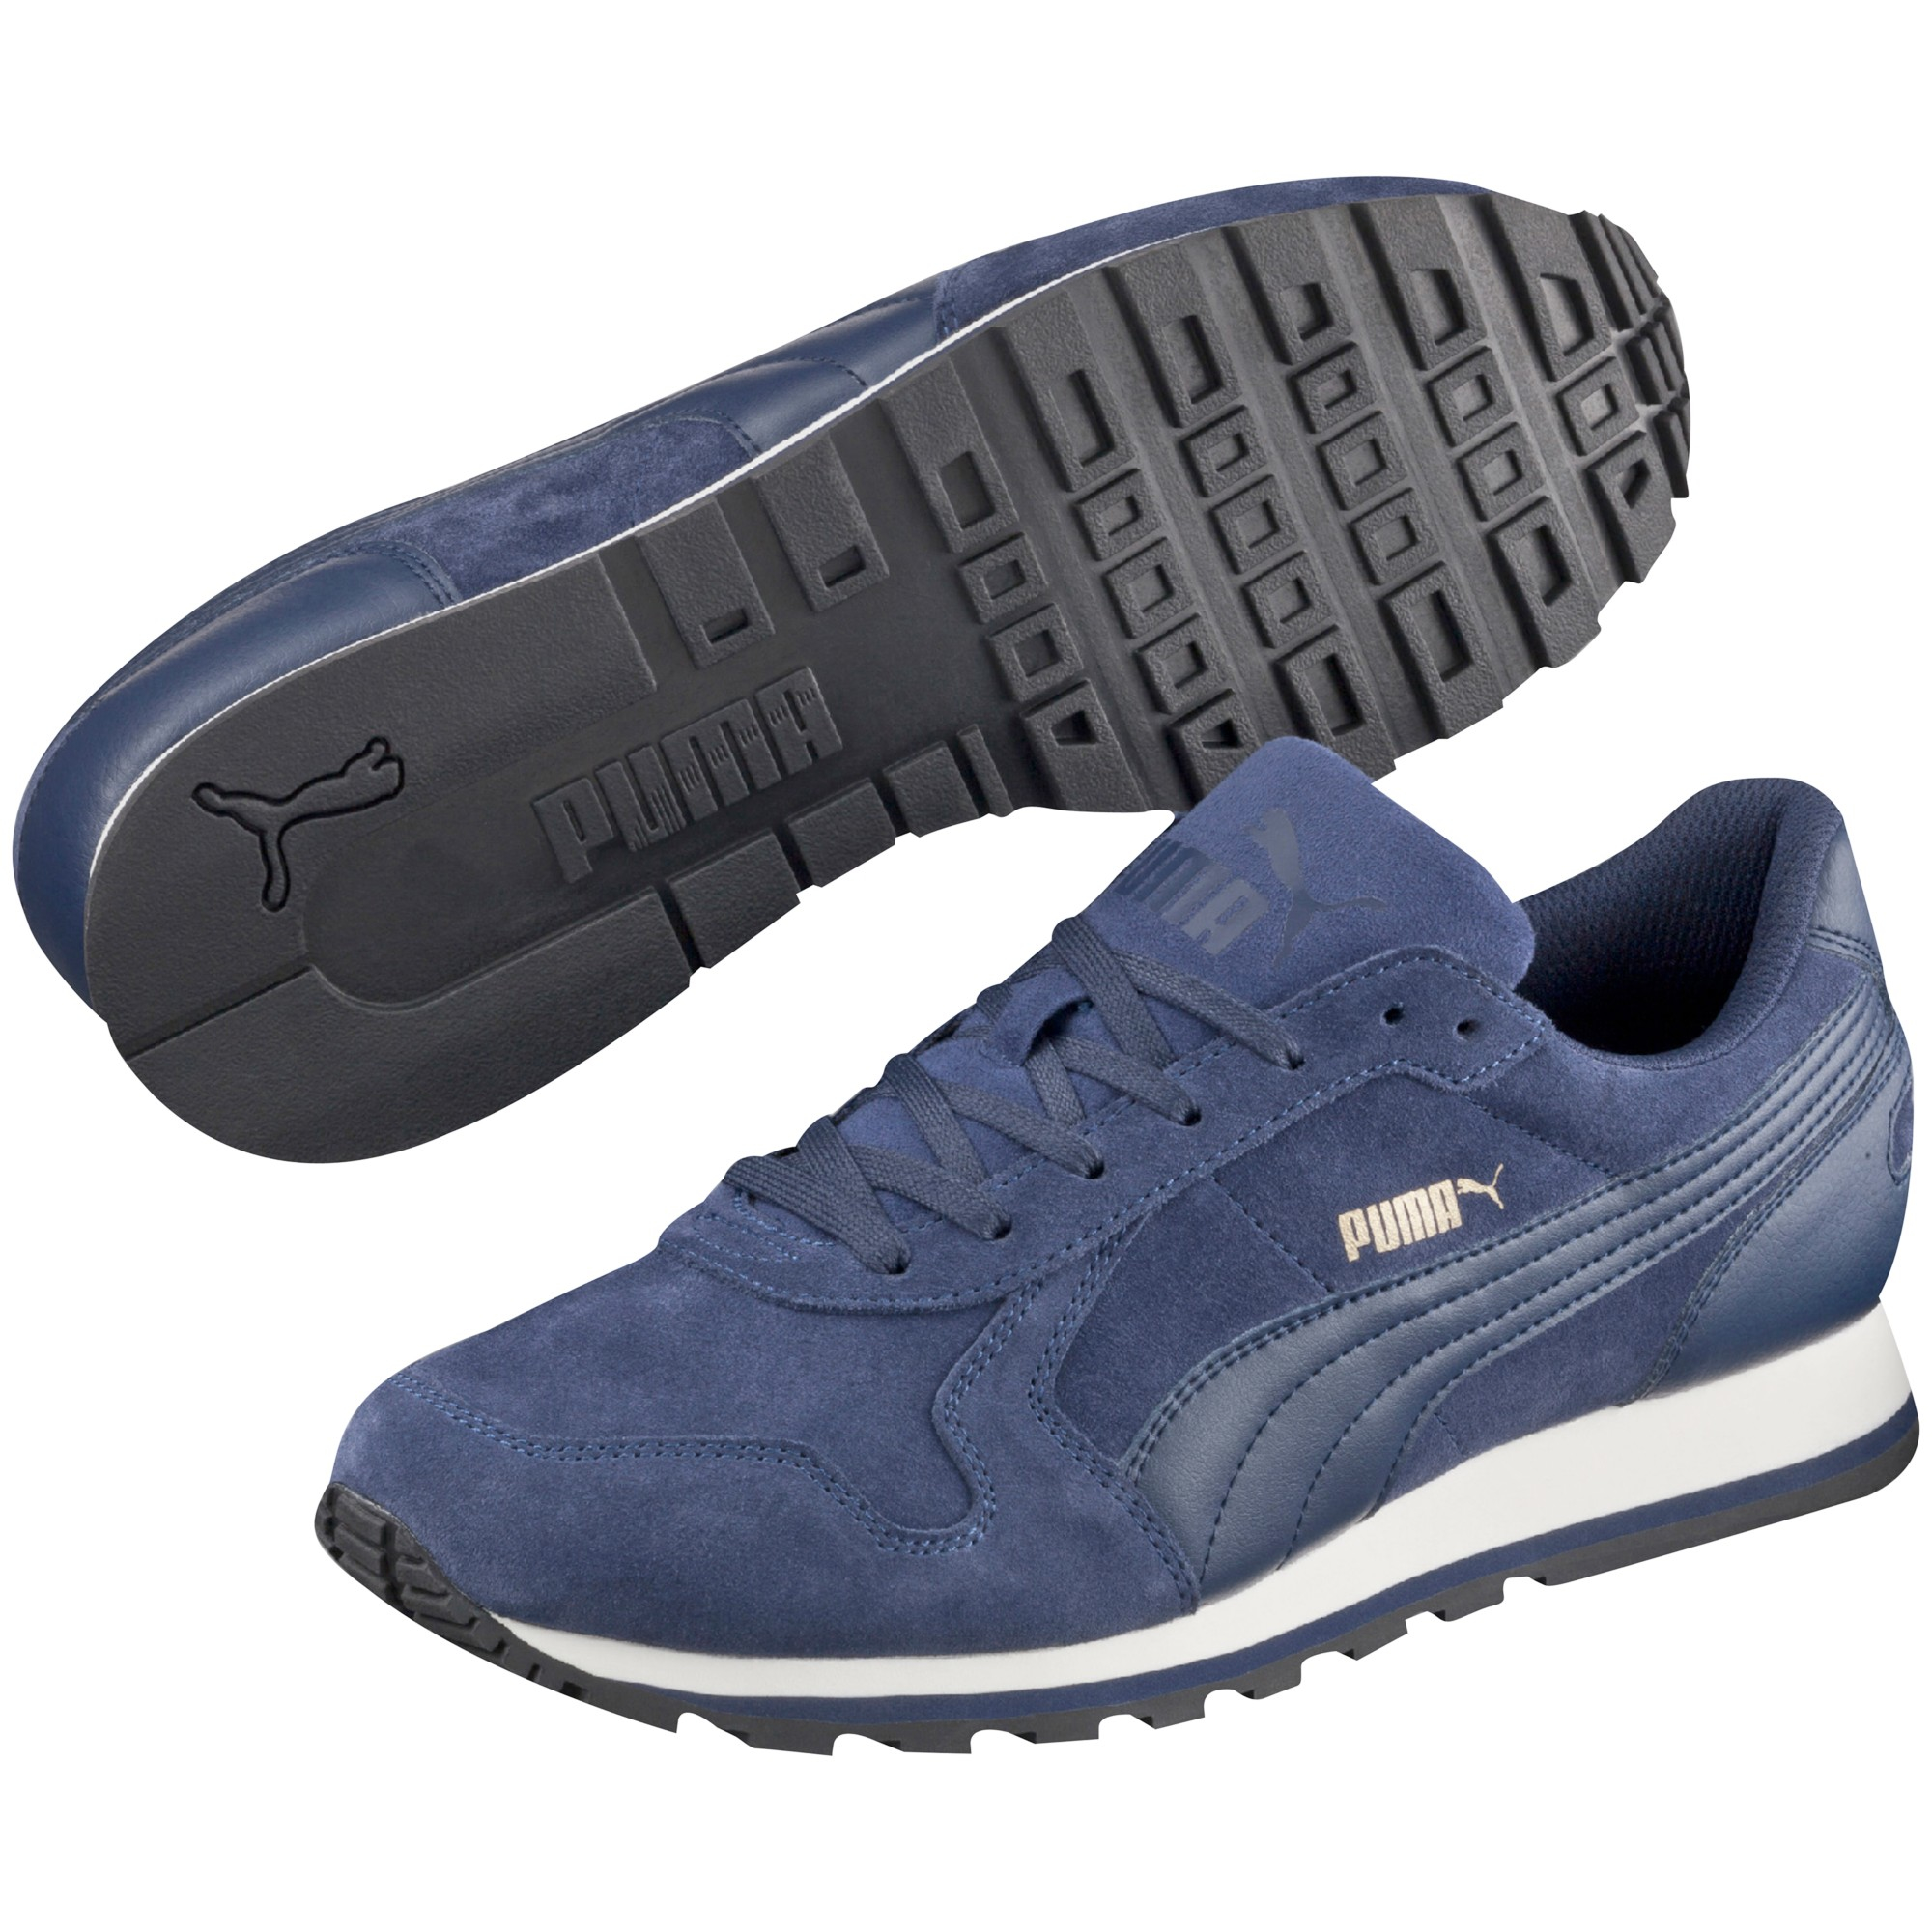 PUMA St Runner Suede Trainers in Blue for Men - Lyst e00bb092c